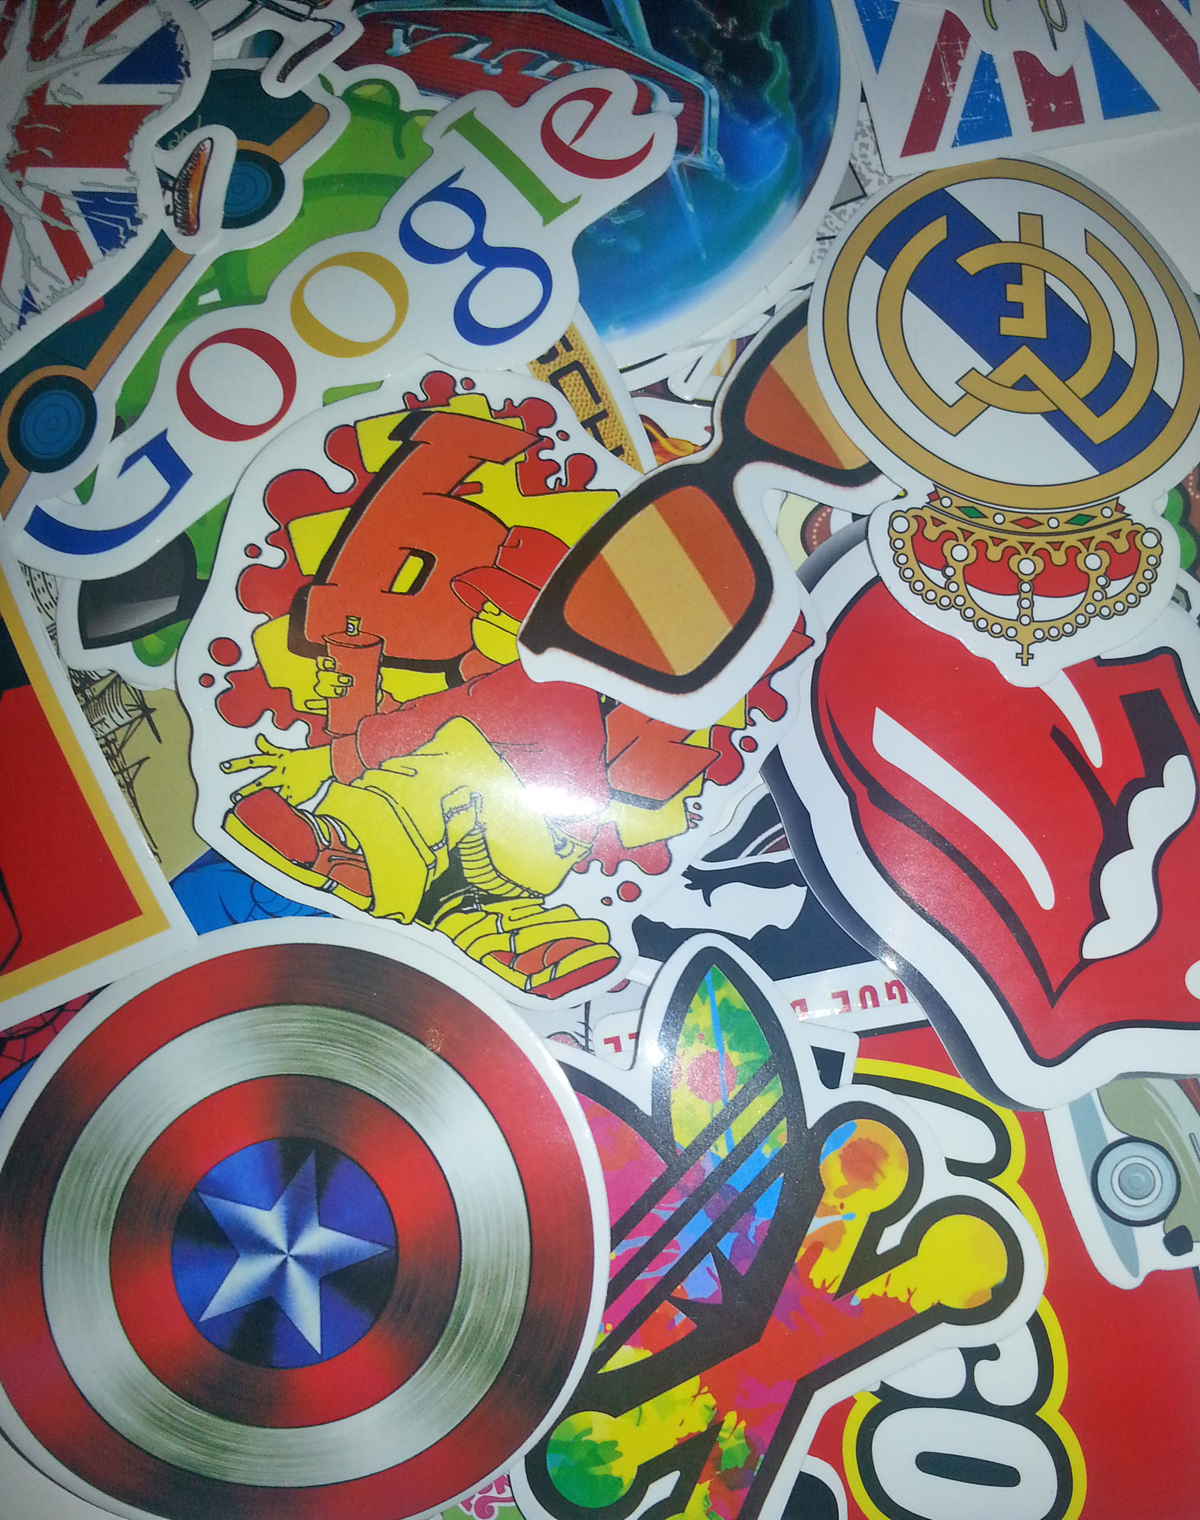 Custom Die Cut Stickers For Promoting Brands And Businesses - What are custom die cut stickers